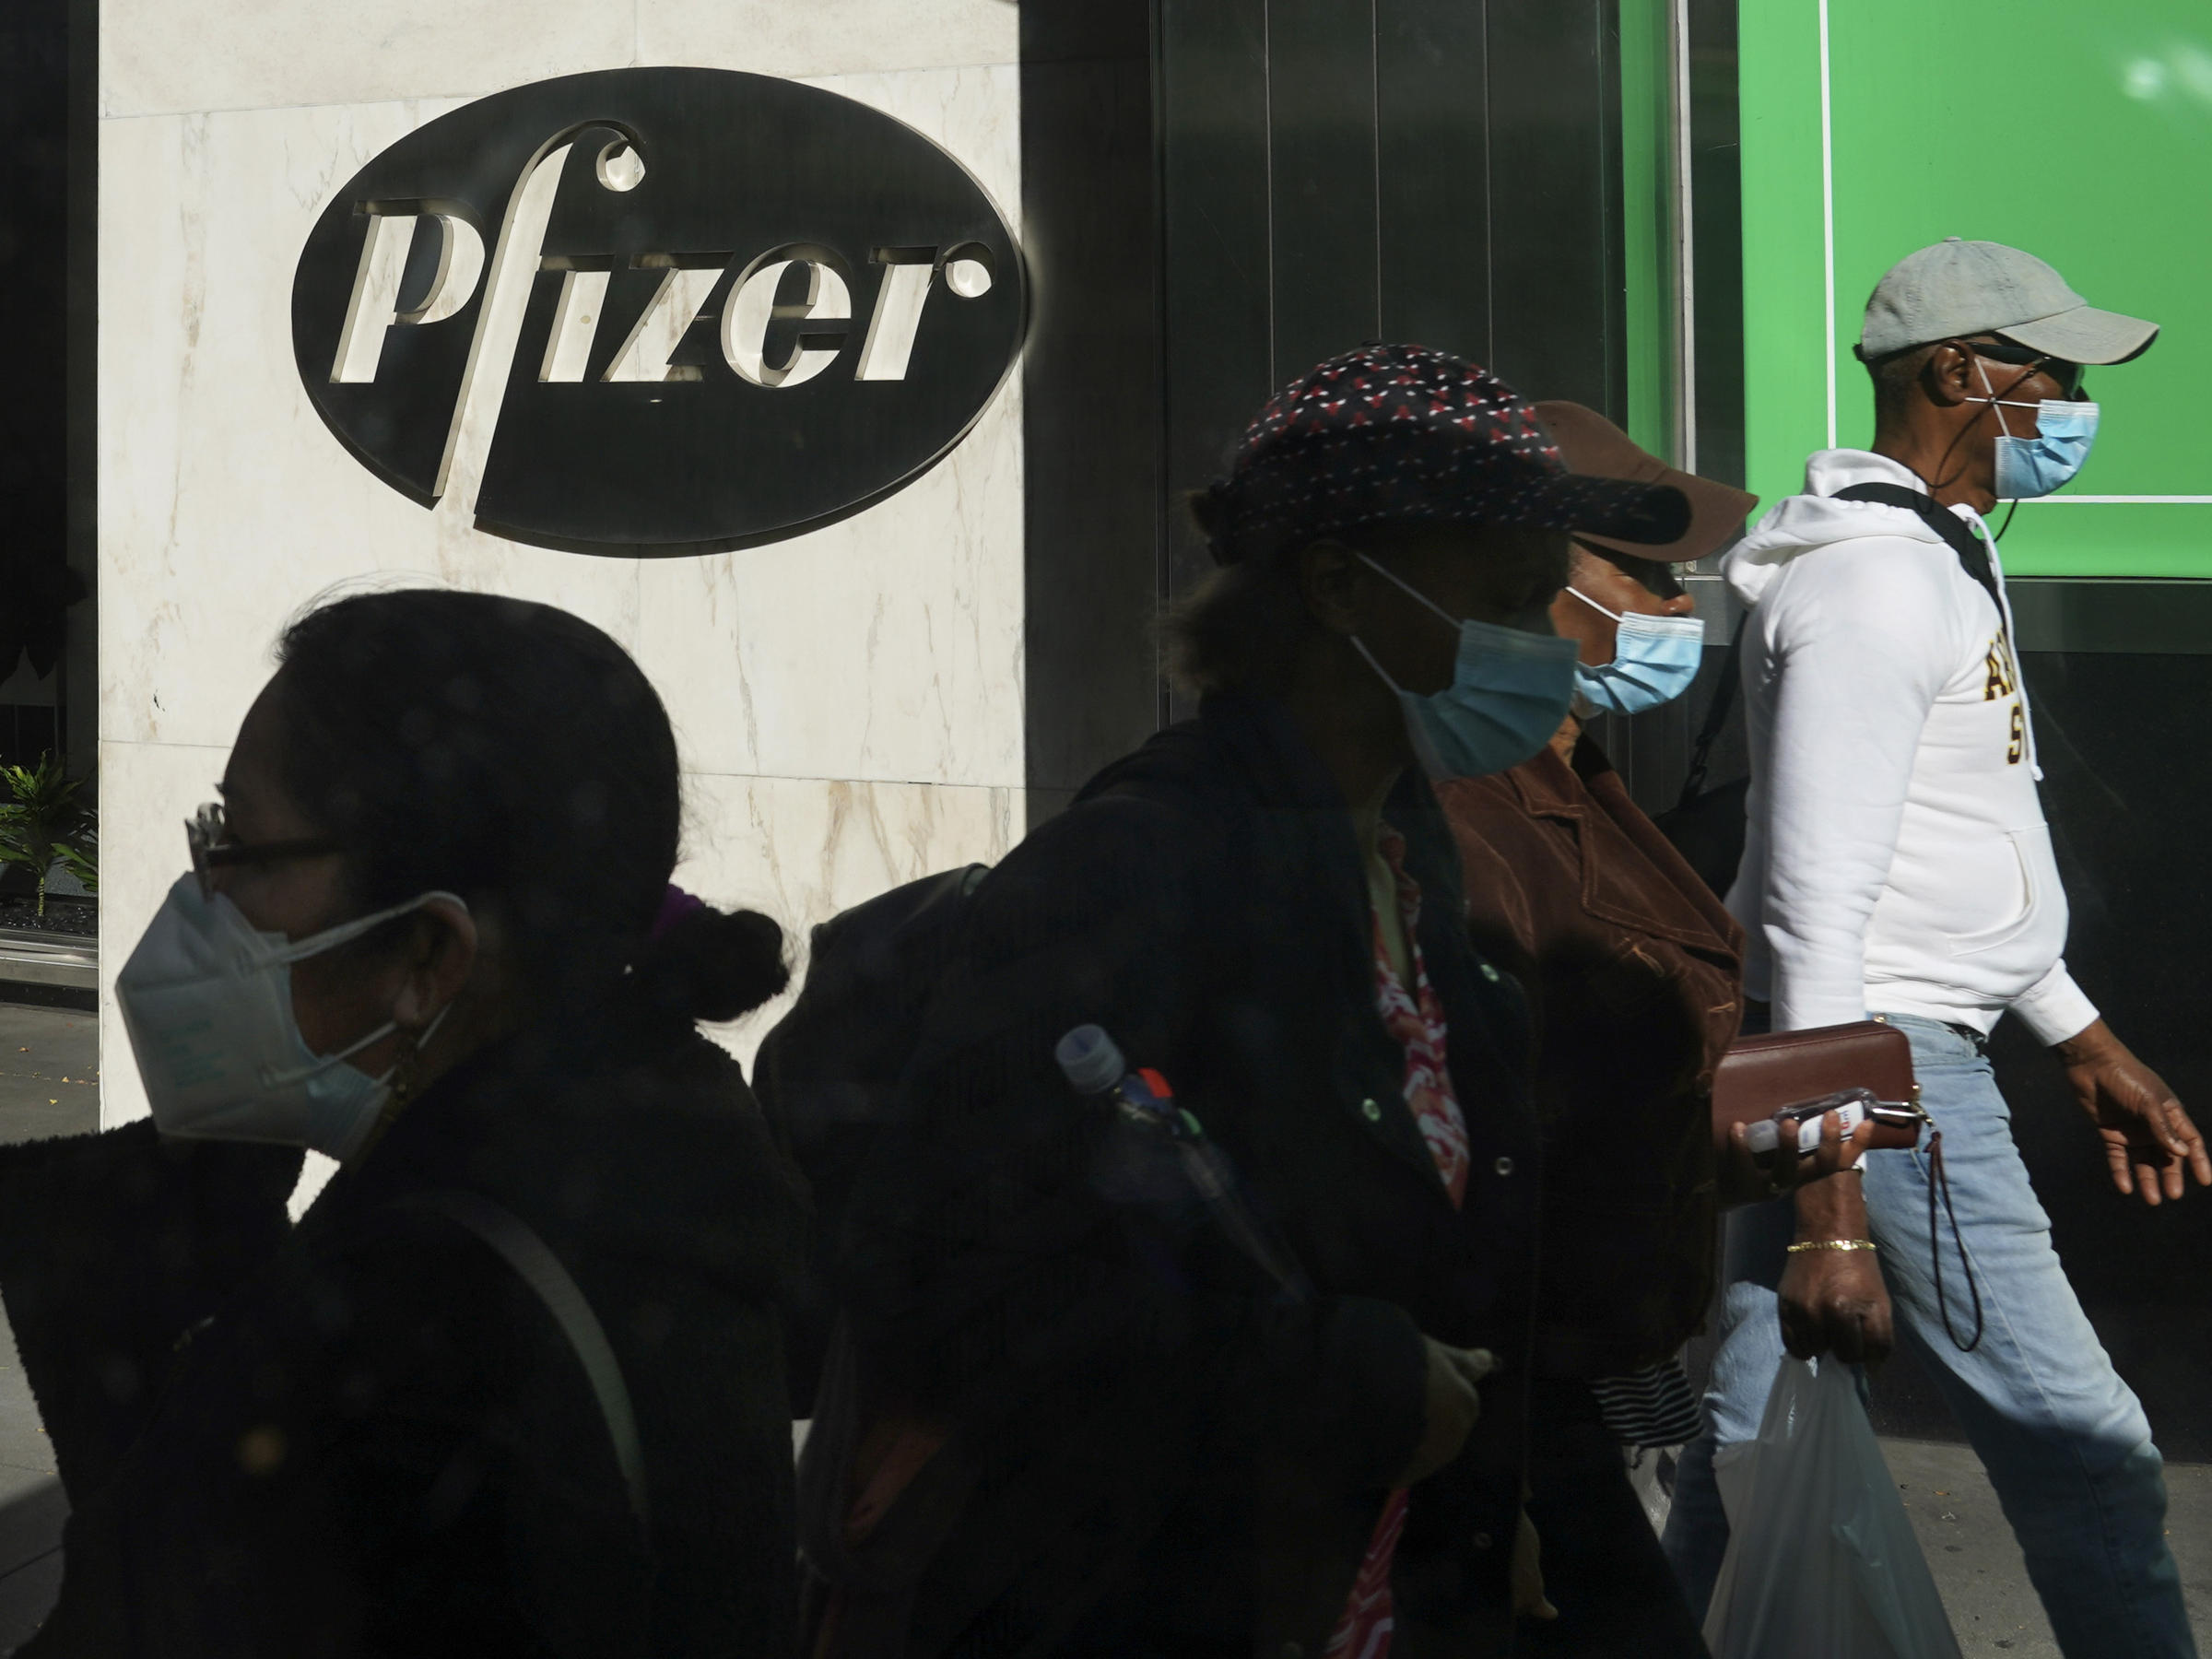 Pfizer plans to file within days with the Food and Drug Administration to allow emergency use of its COVID-19 vaccine